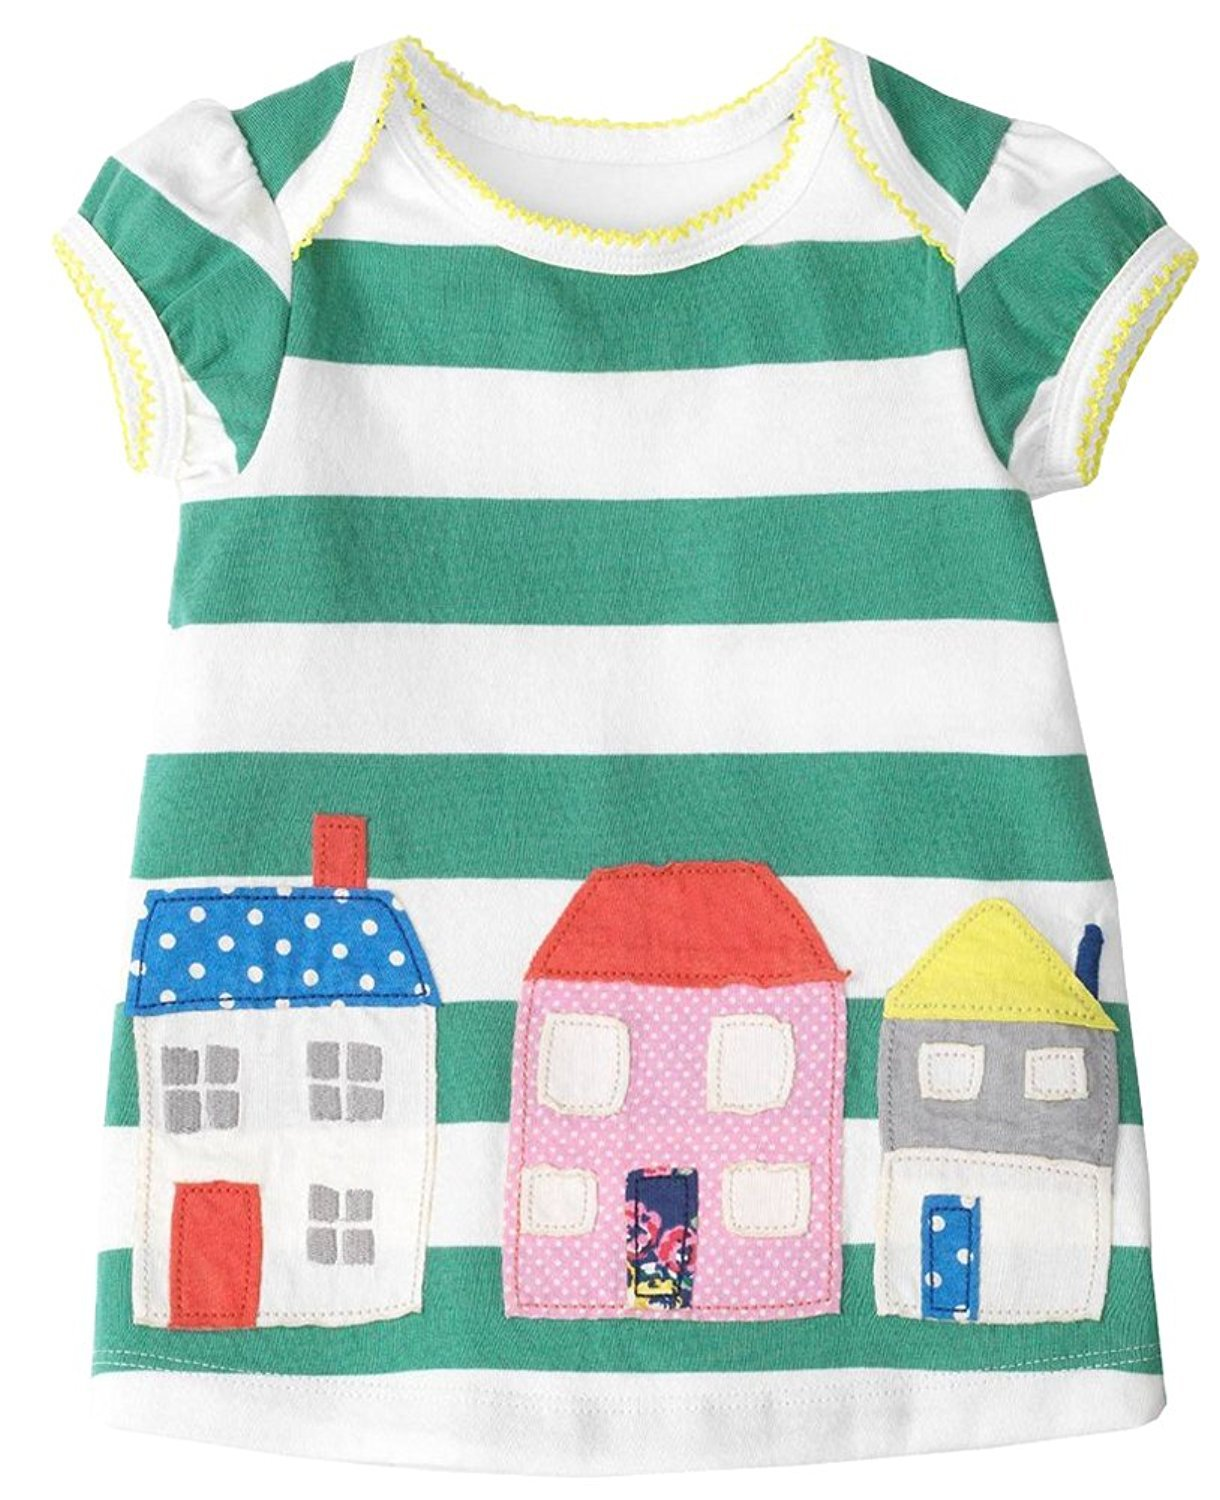 Fiream Grils Cotton Striped Dresses Shortsleeve Animal Appliques T-Shirt Casual Dresses 2-7T(House,3T/3-4YRS)